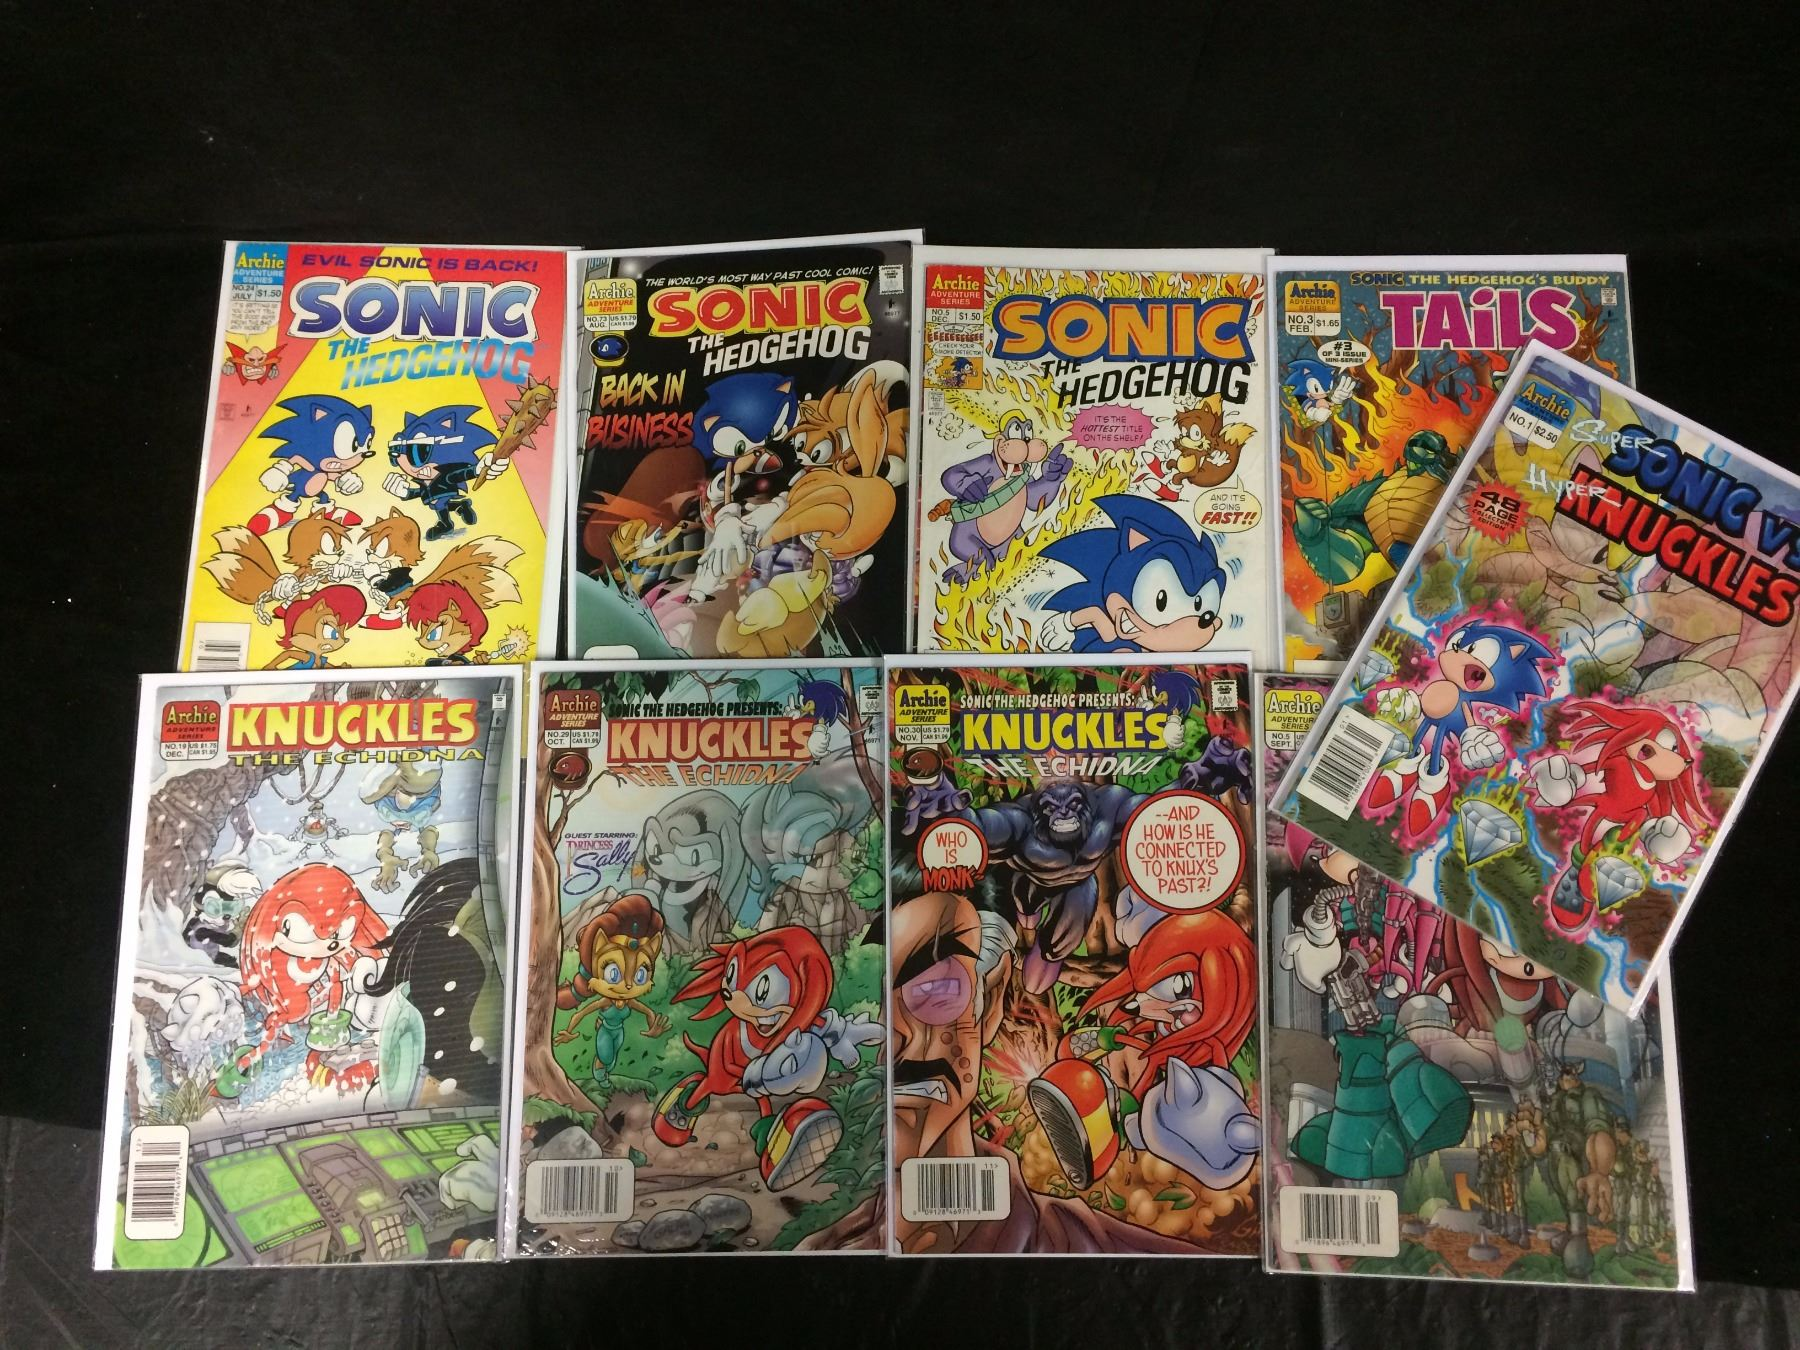 Sonic The Hedgehog Knuckles The Echidna Comic Book Lot